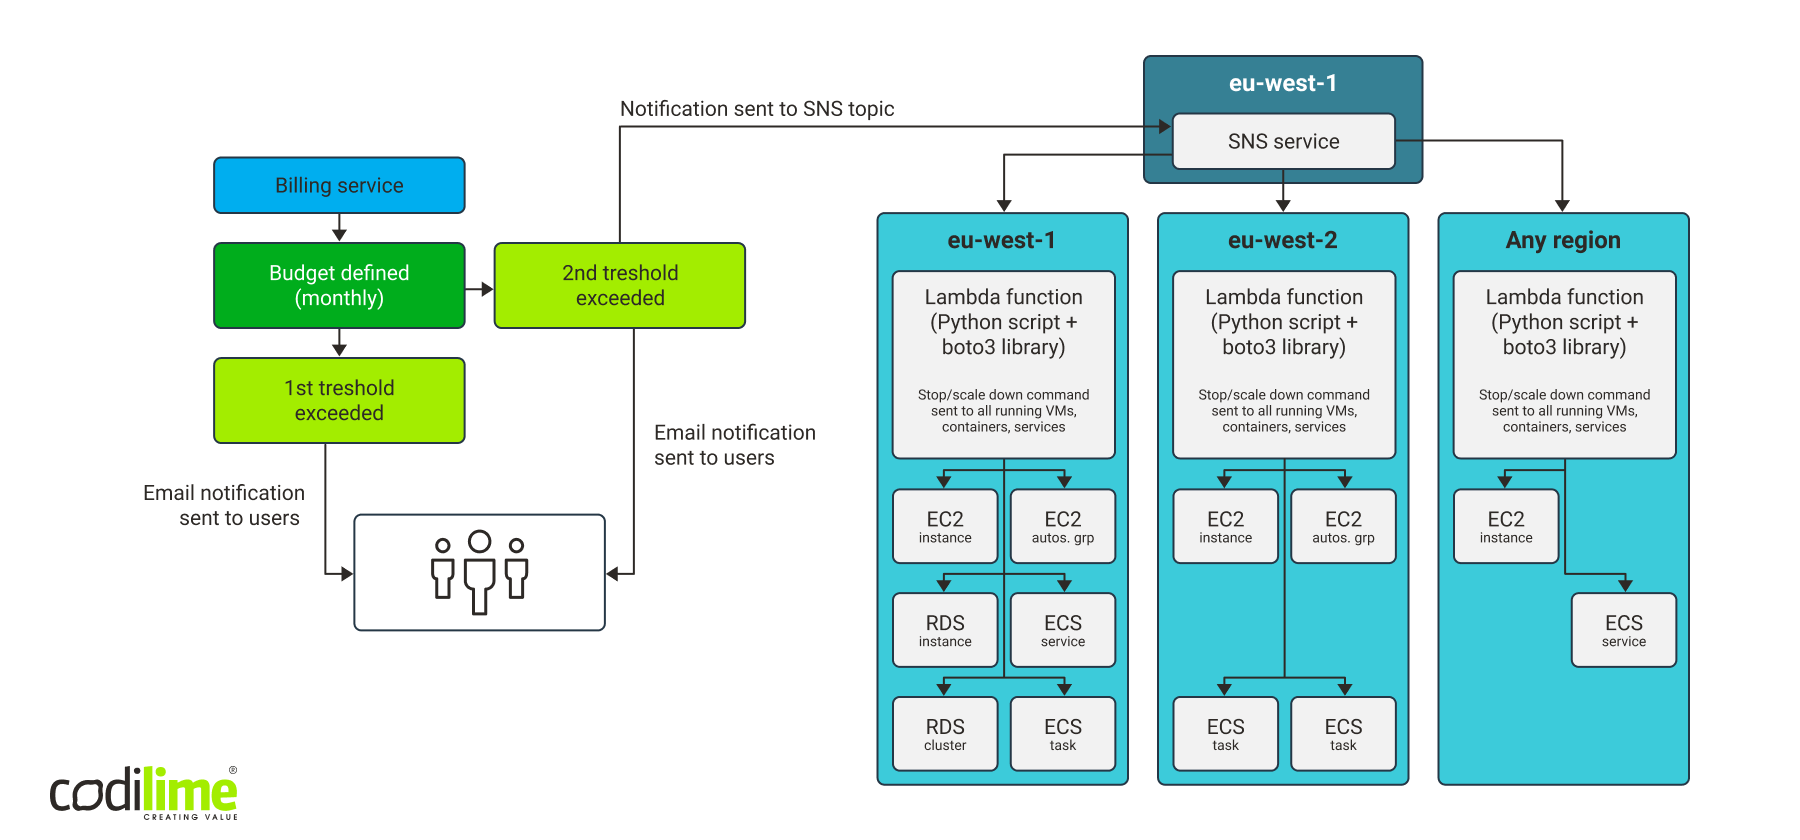 The final overview after implementation